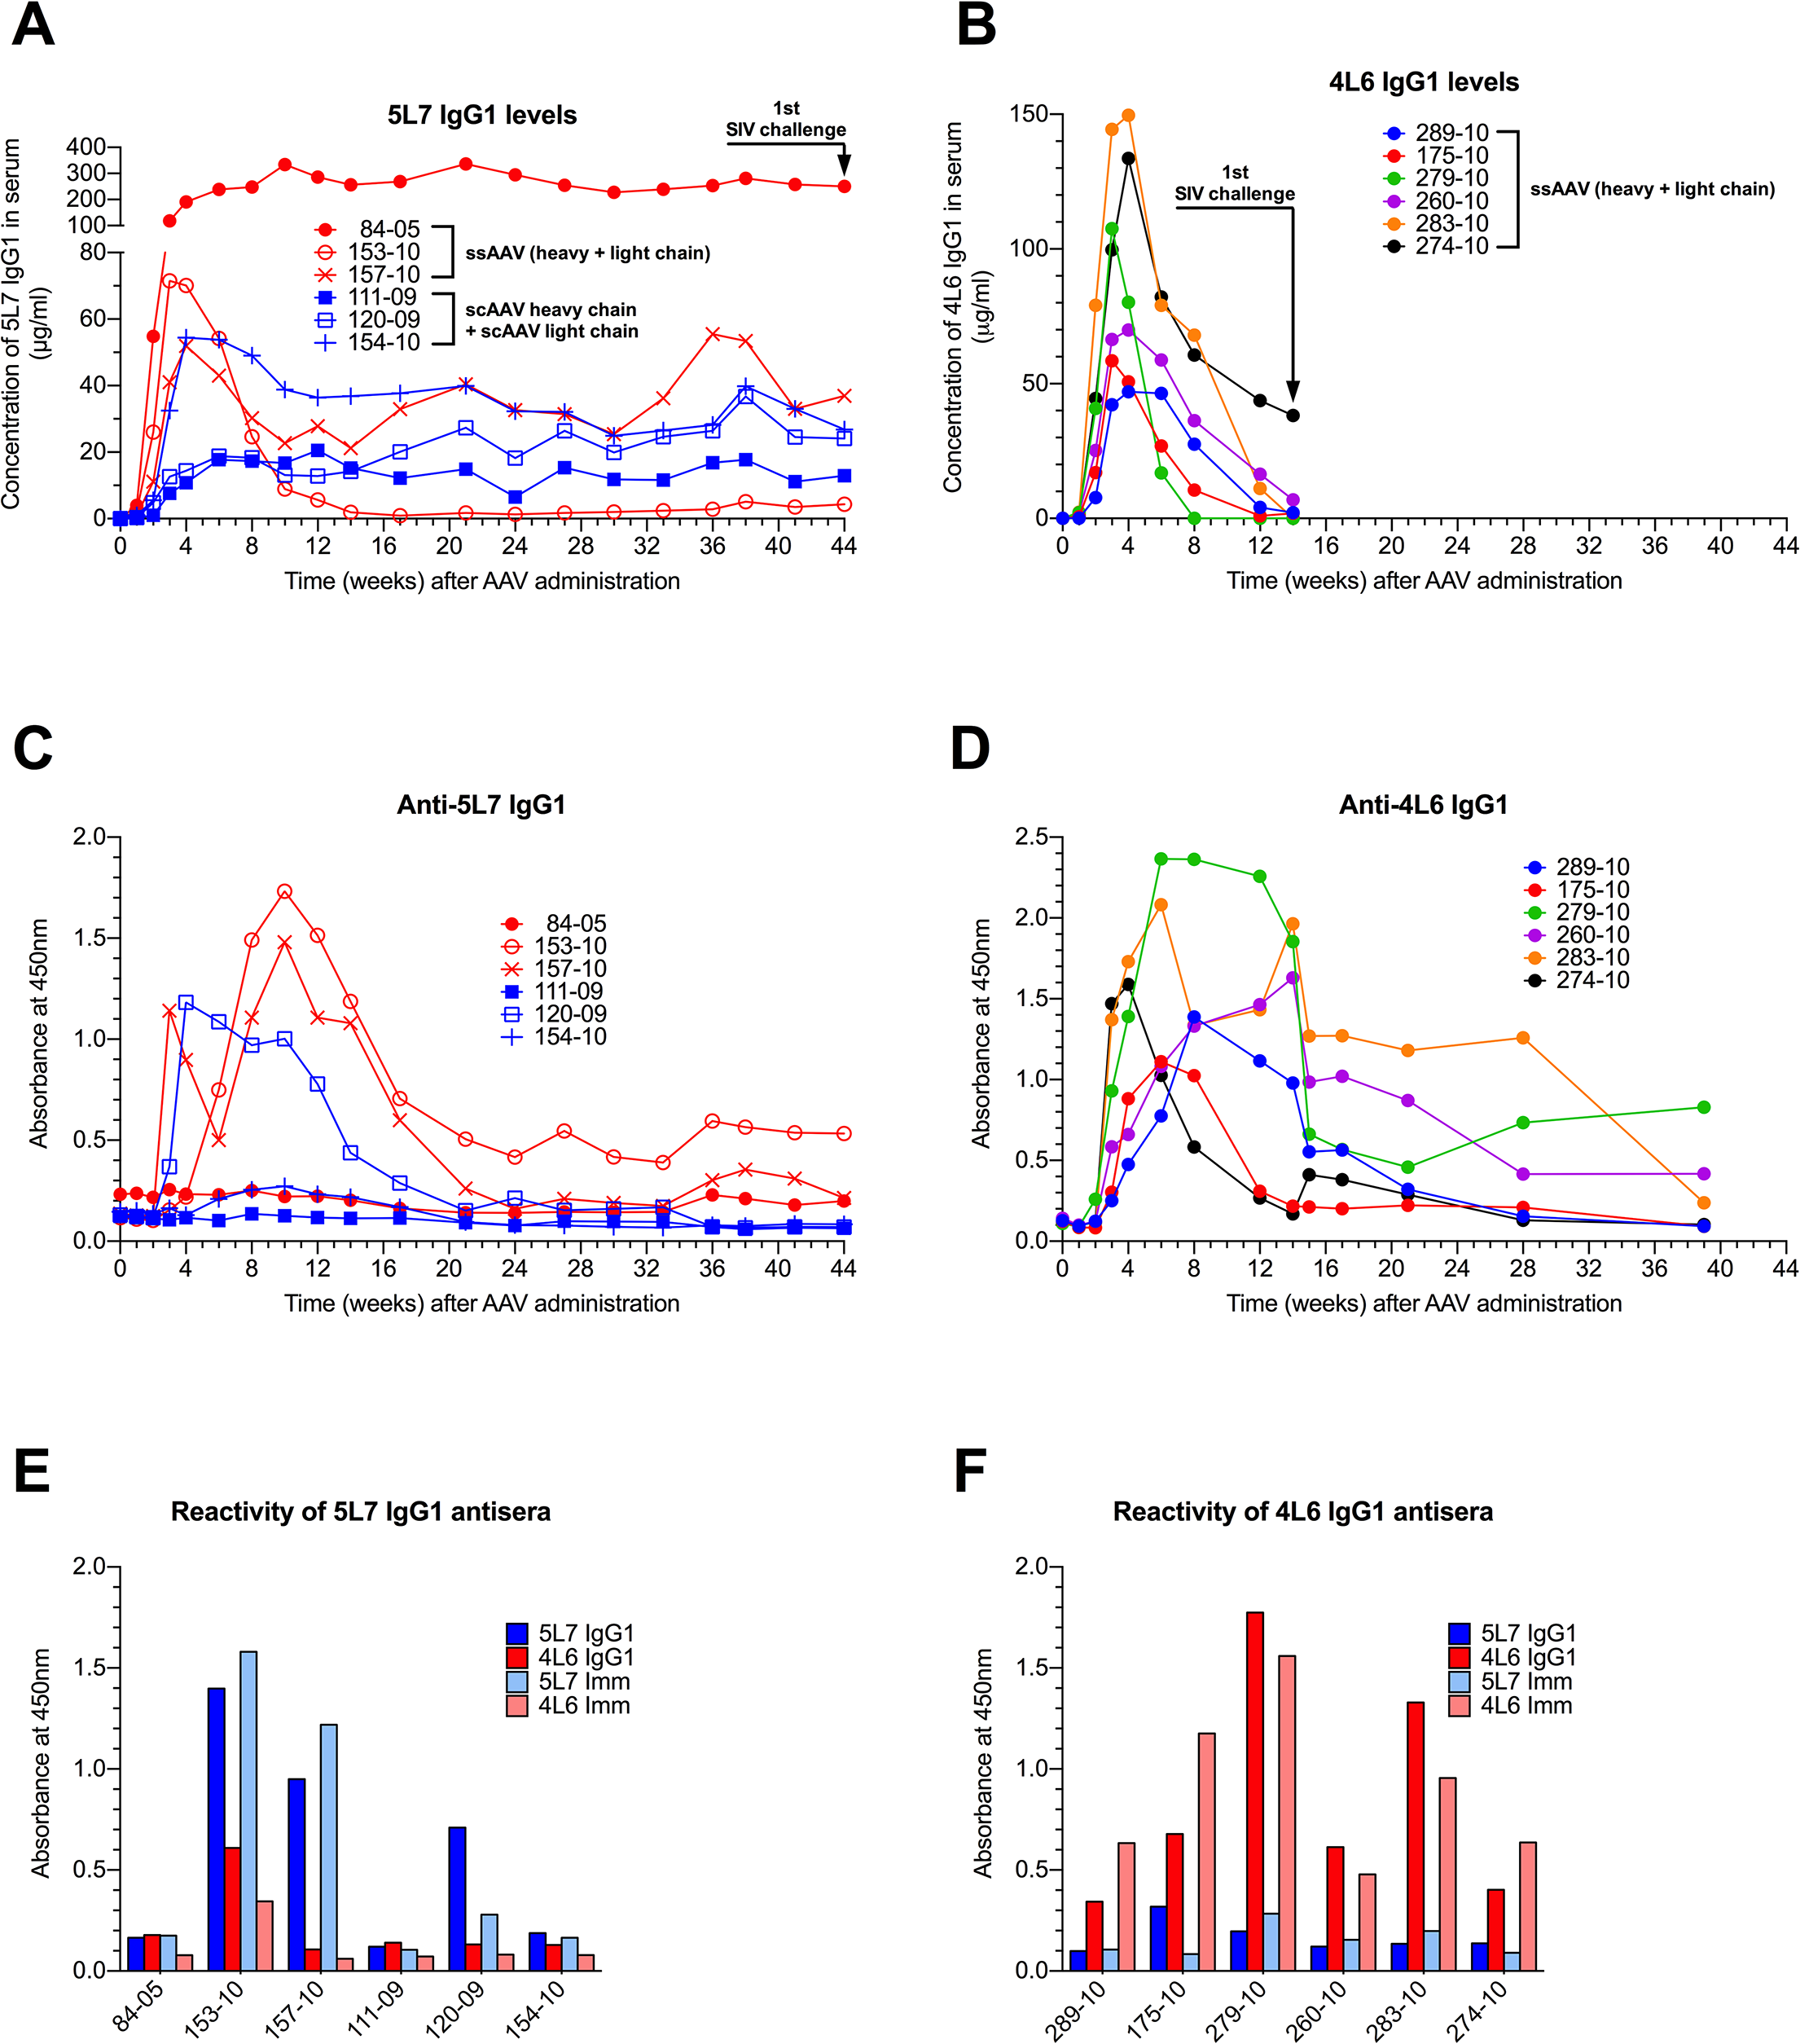 Serum concentration of the IgG1 mAbs 4L6 and 5L7, and emerging anti-mAb responses following recombinant AAV administration.